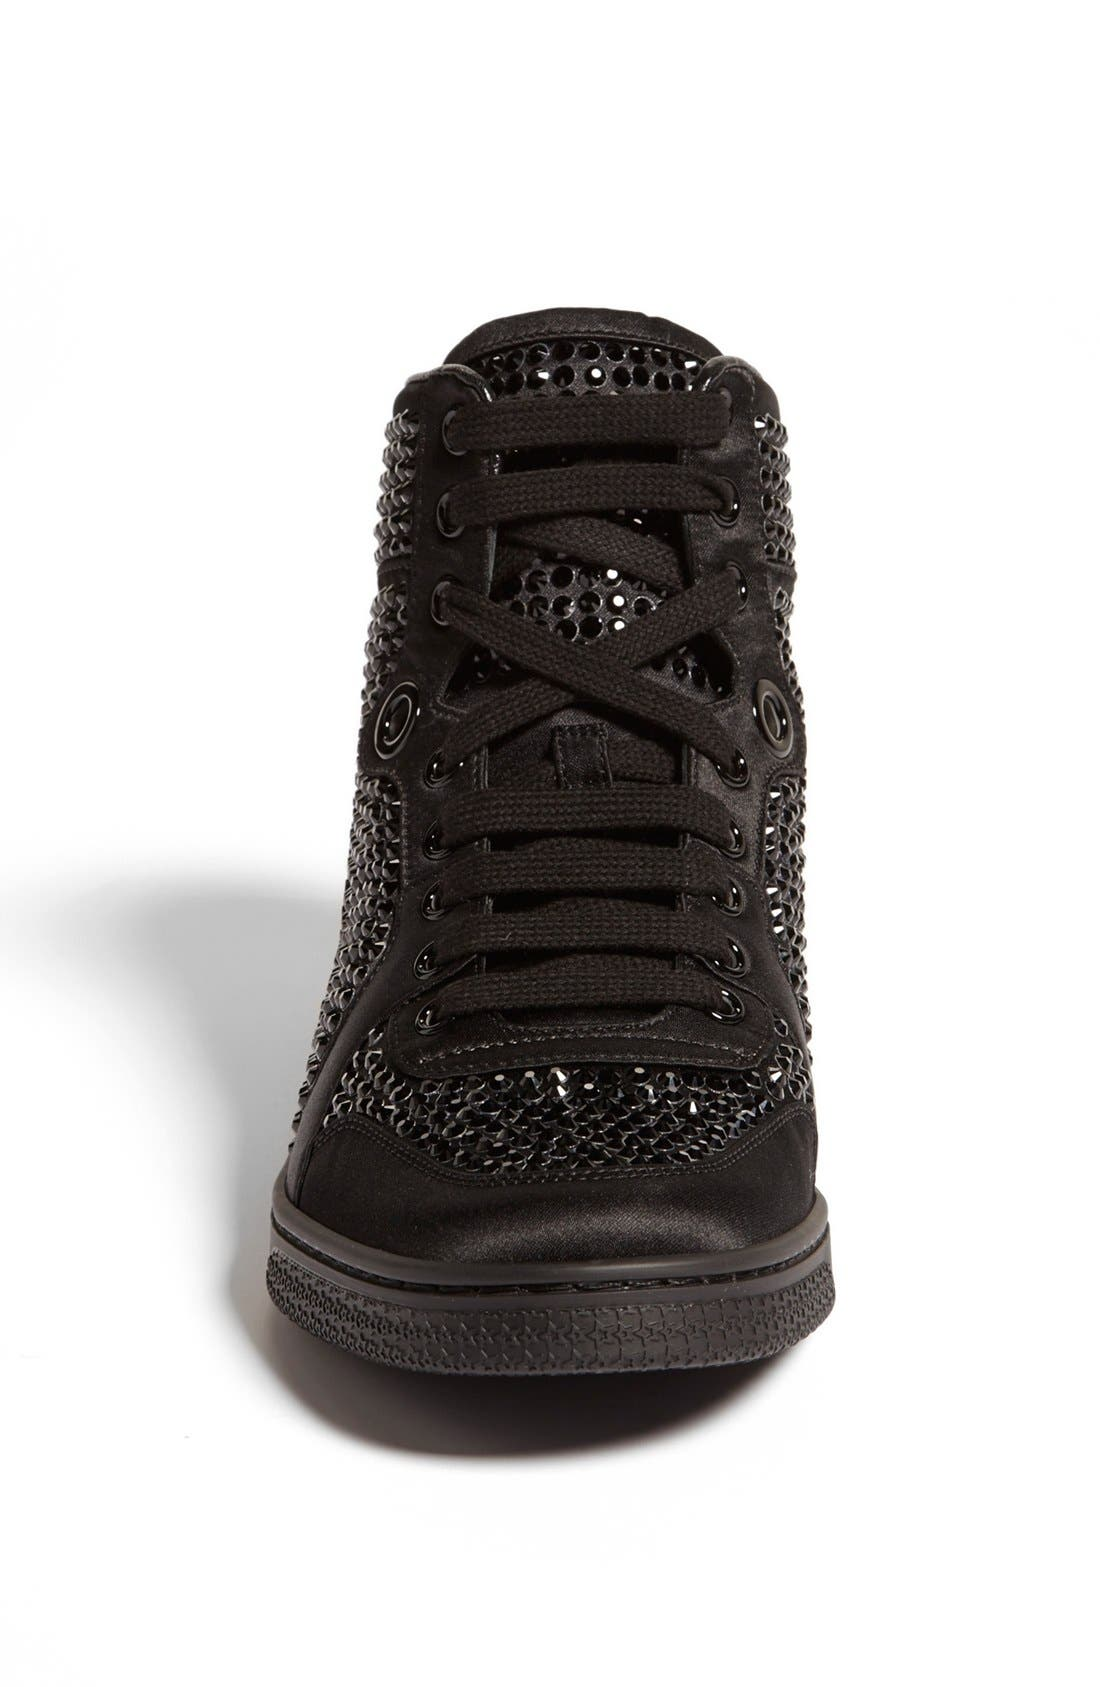 Alternate Image 3  - Gucci 'Coda' Crystal Stud High Top Sneaker